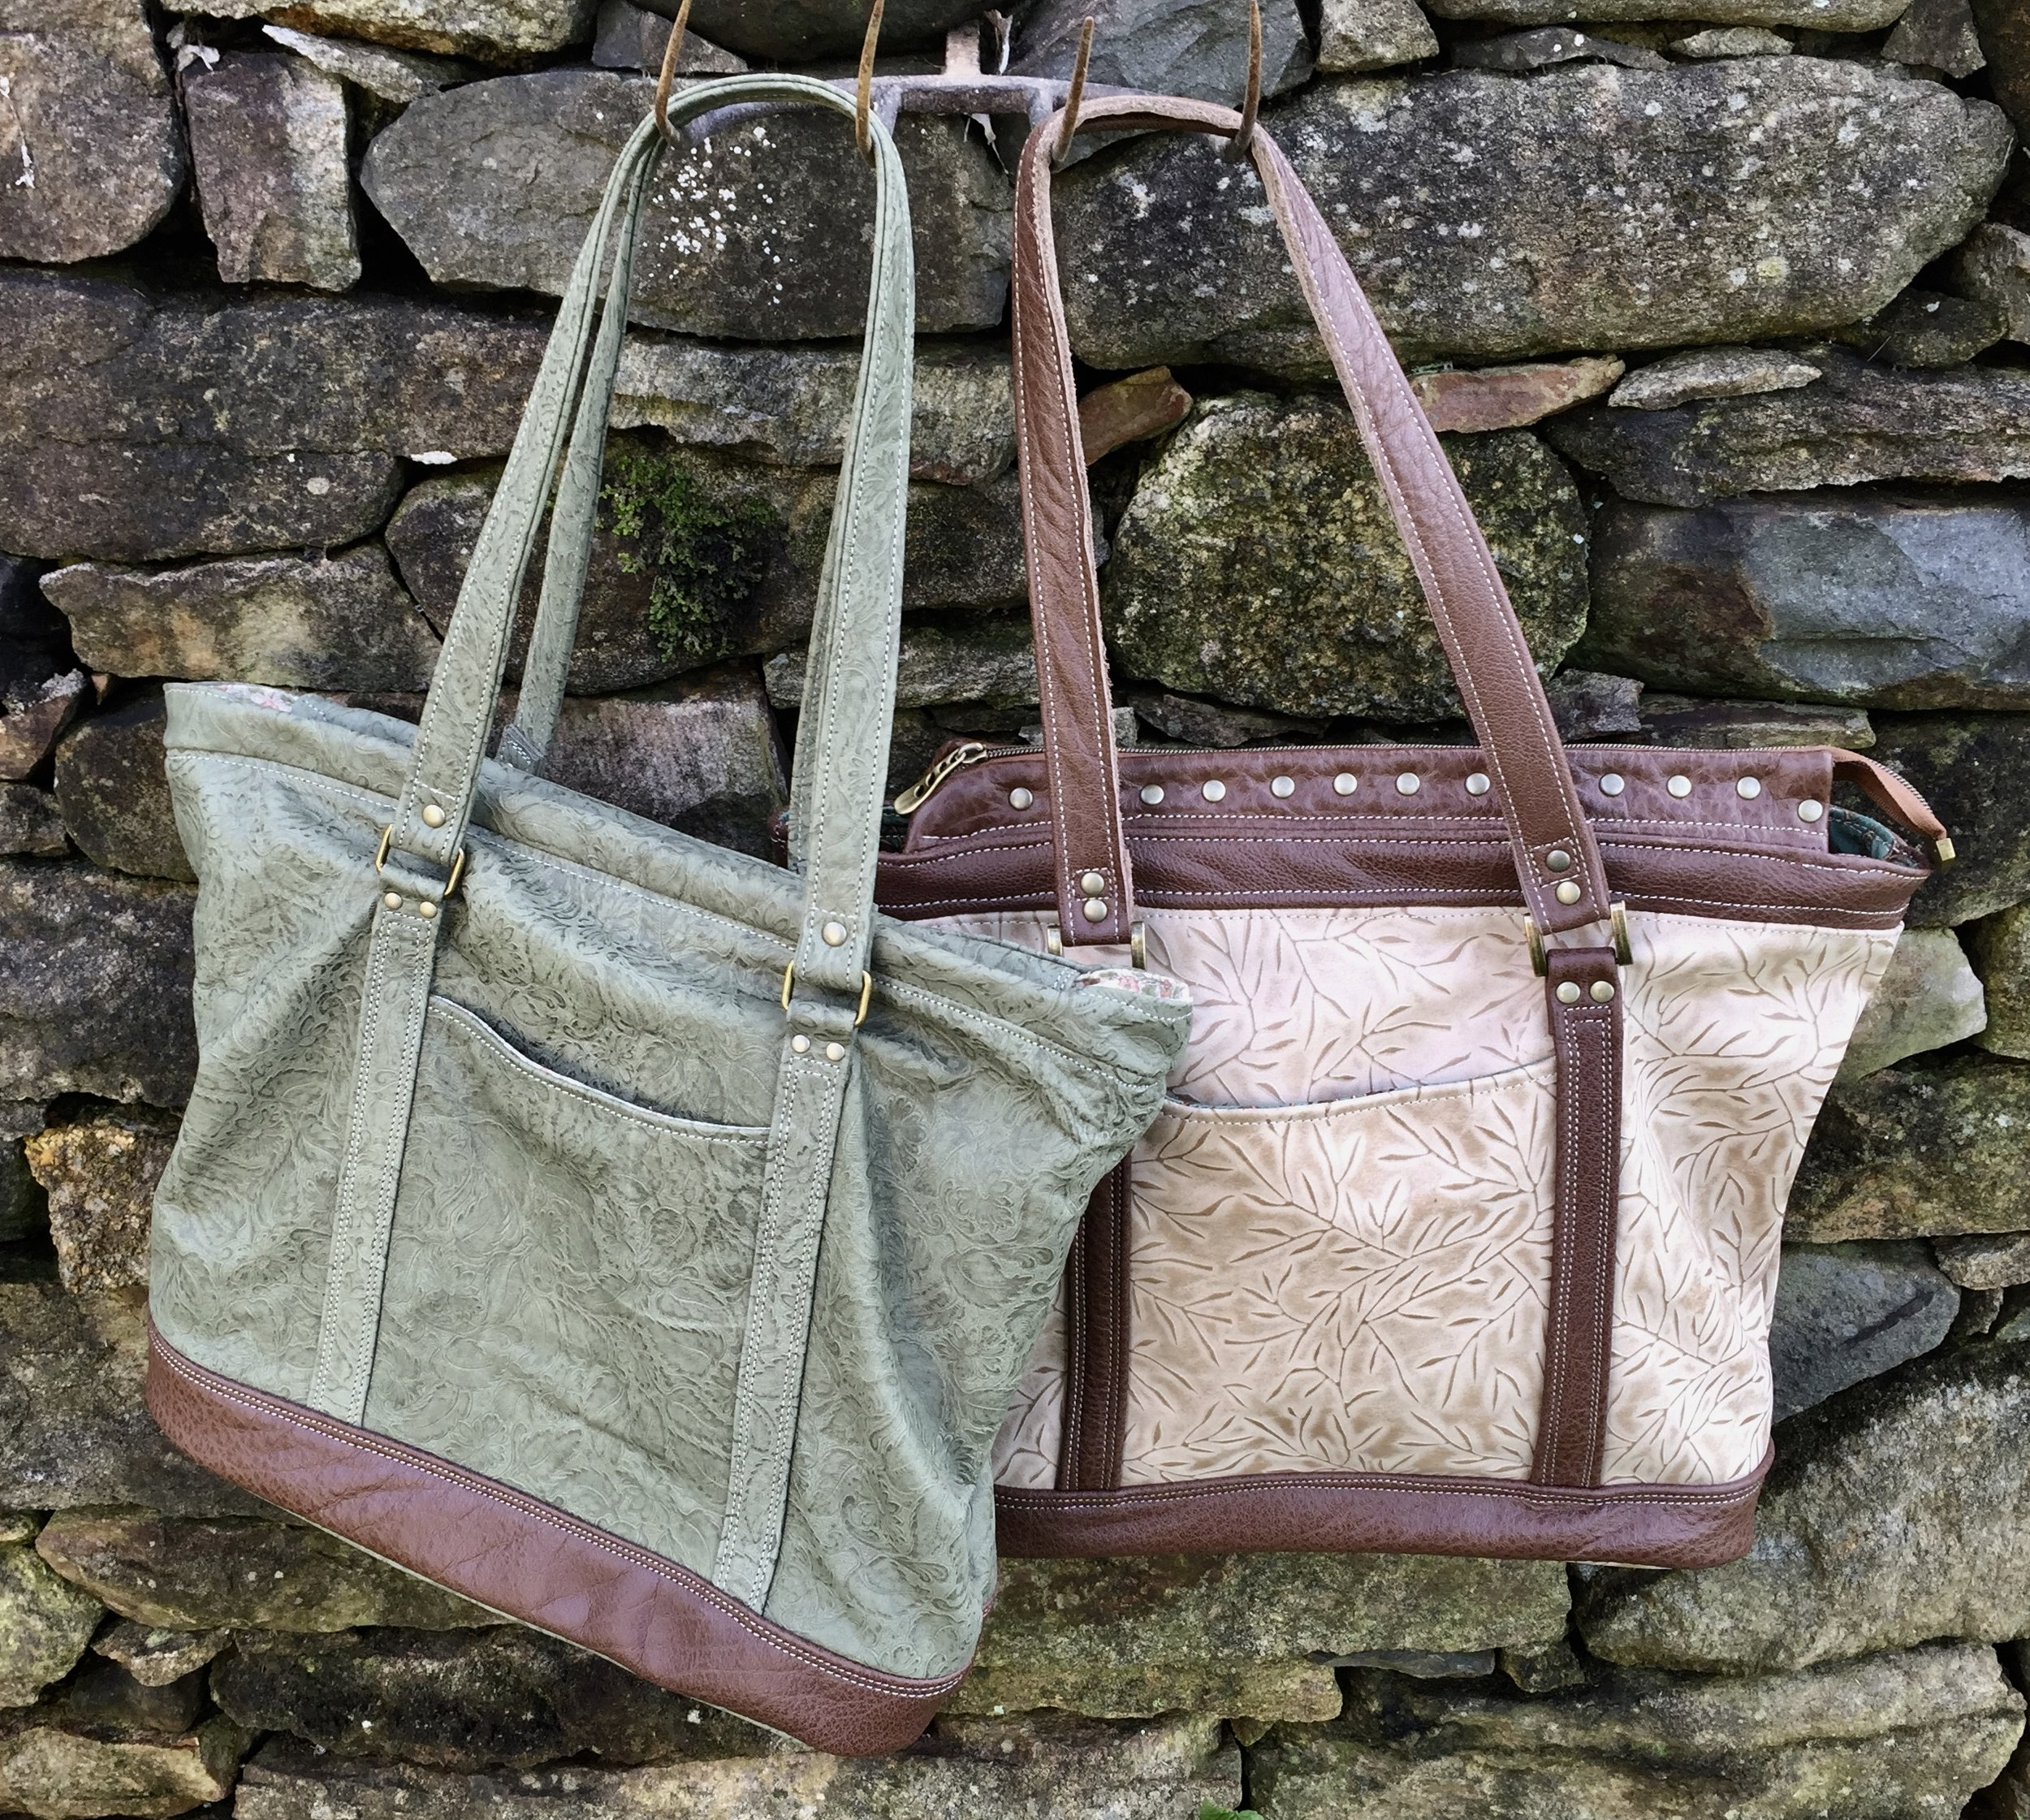 Bluebell Totes - embossed leather/cotton fabric lined